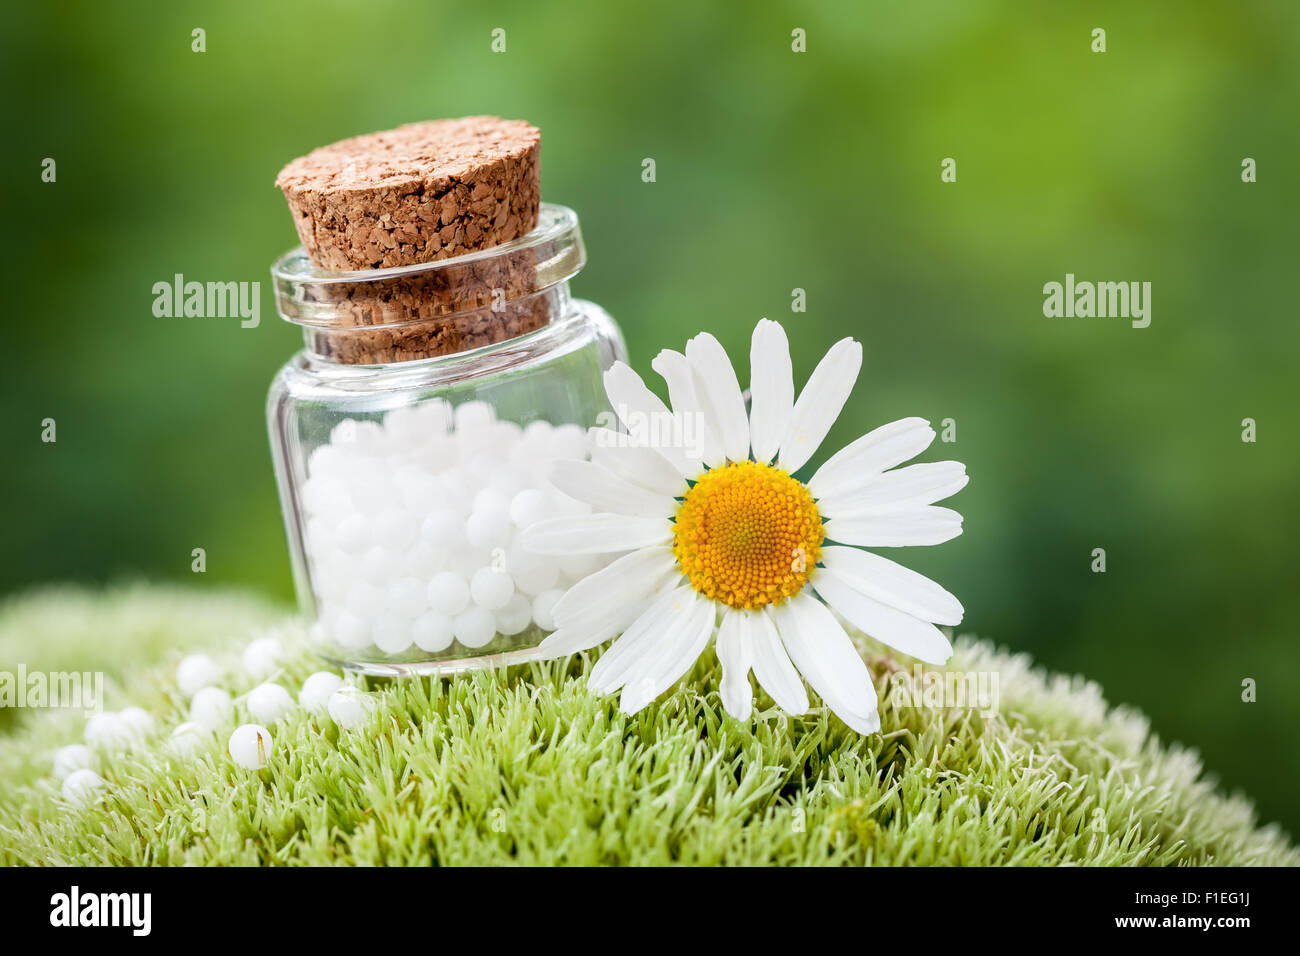 Bottle of homeopathy globules and daisy flower on green moss. - Stock Image